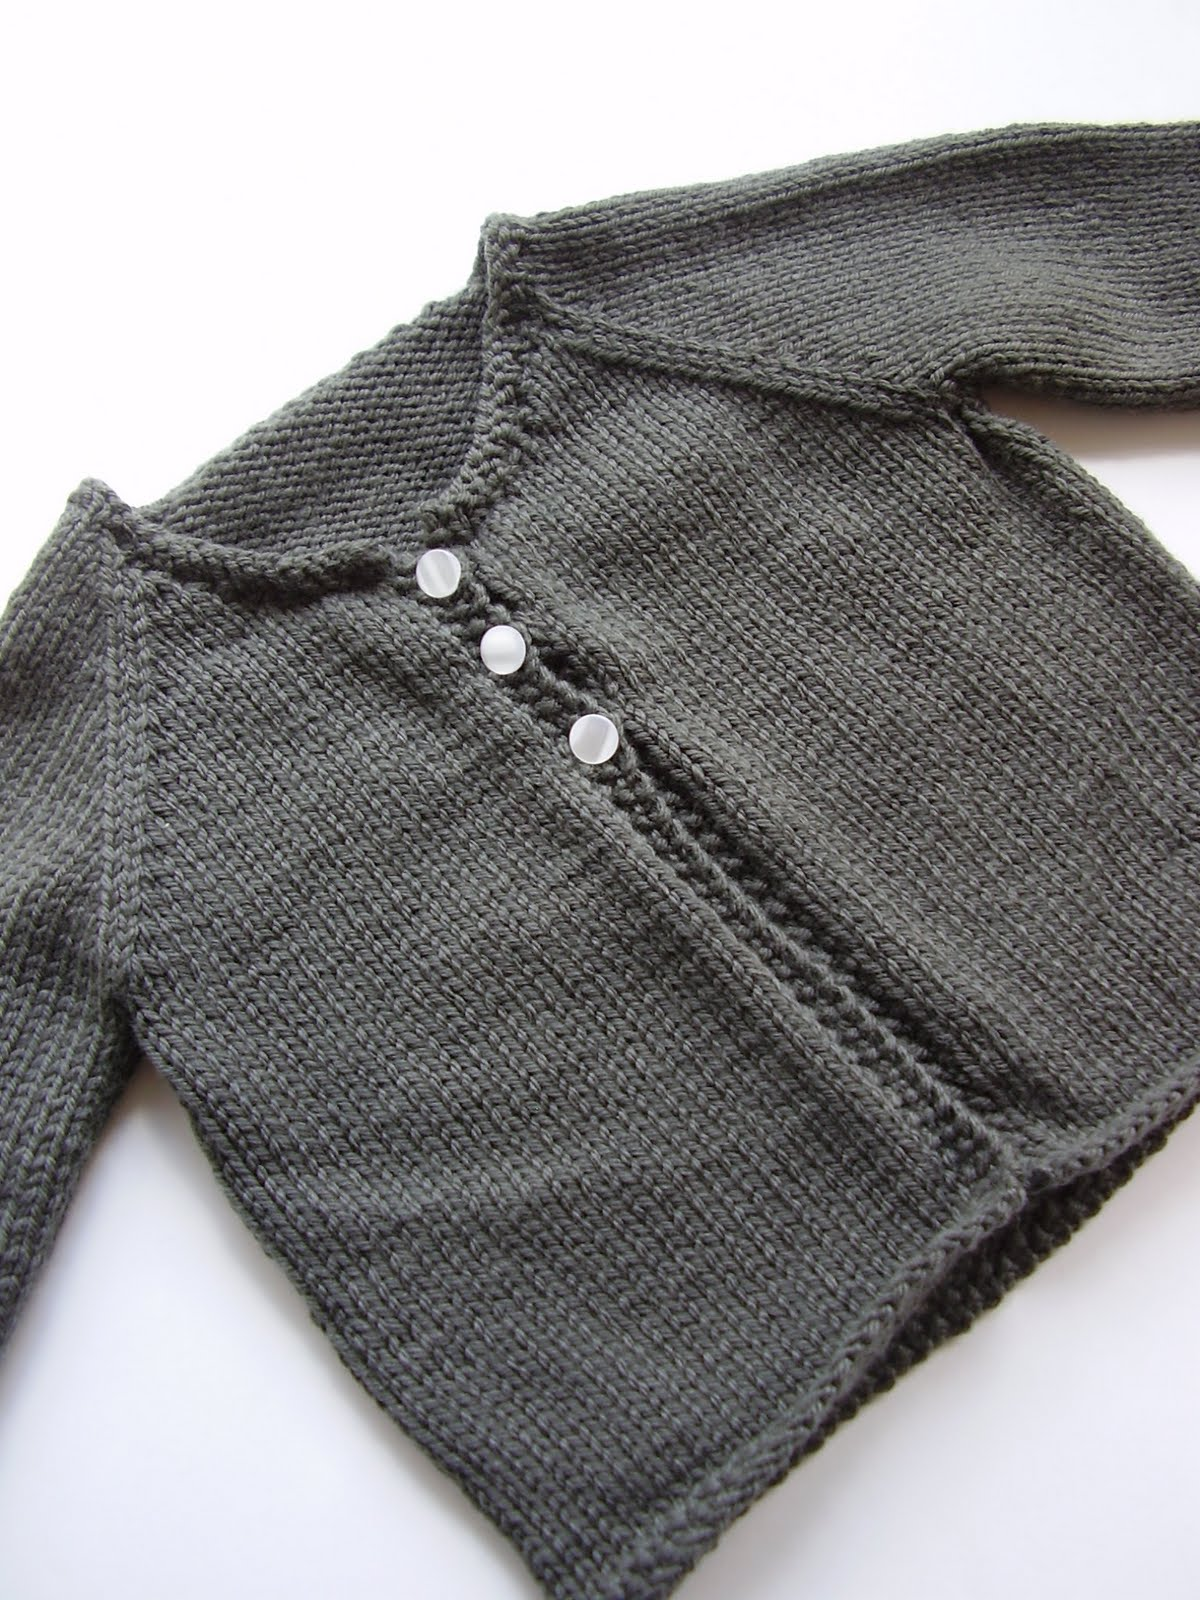 Baby Boom; finished knits